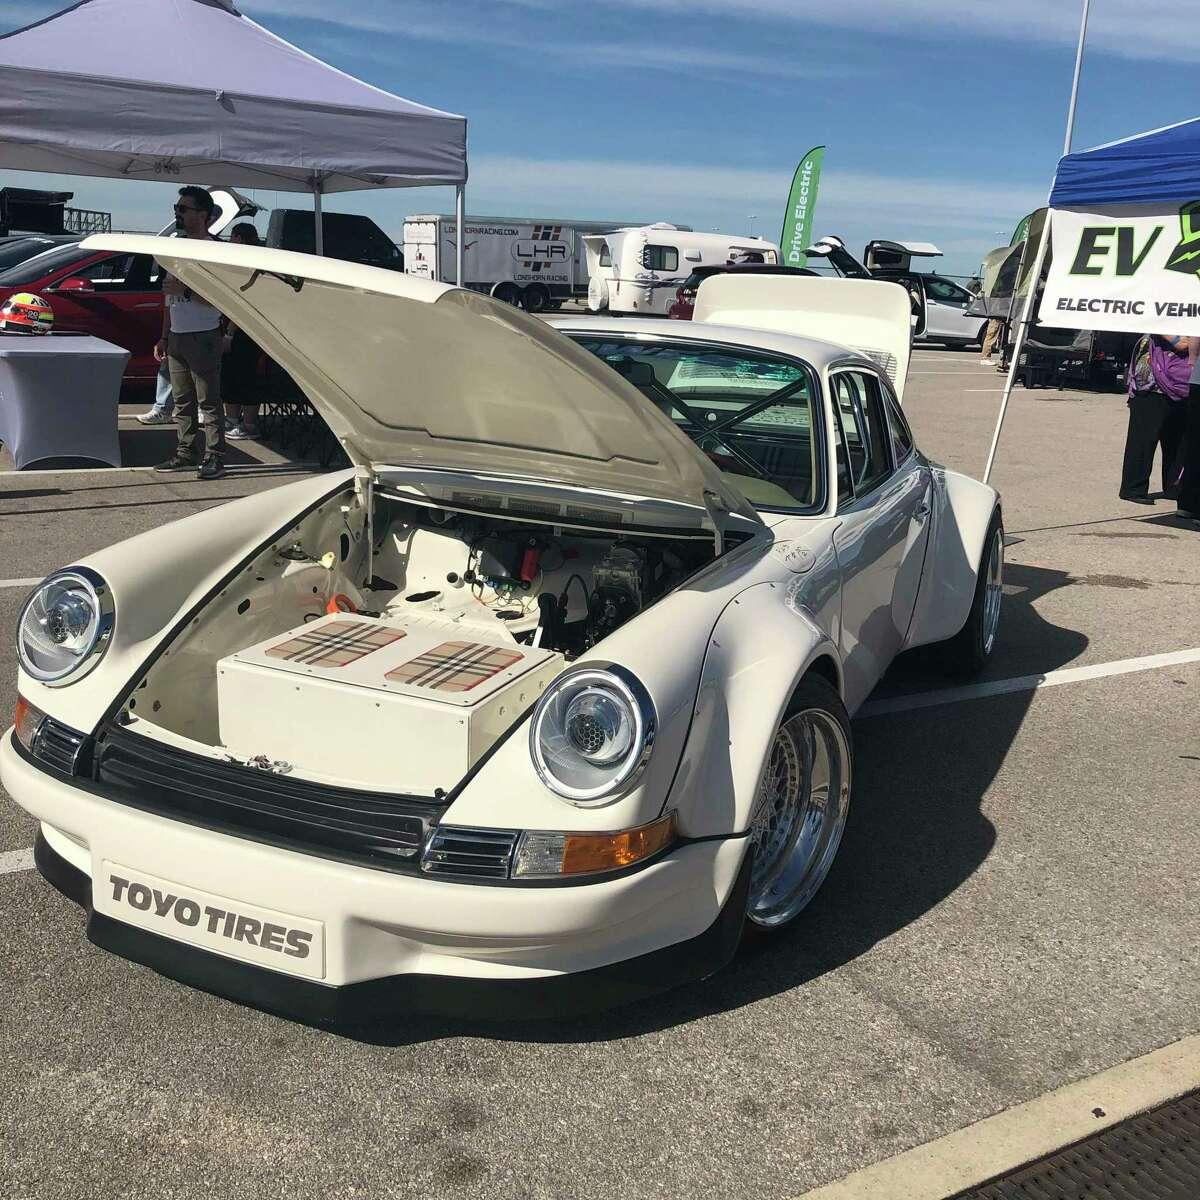 An electric Porsche goes on display in Austin. Some electric cars reportedly can power a single-family home for about a week if its battery is fully charged.